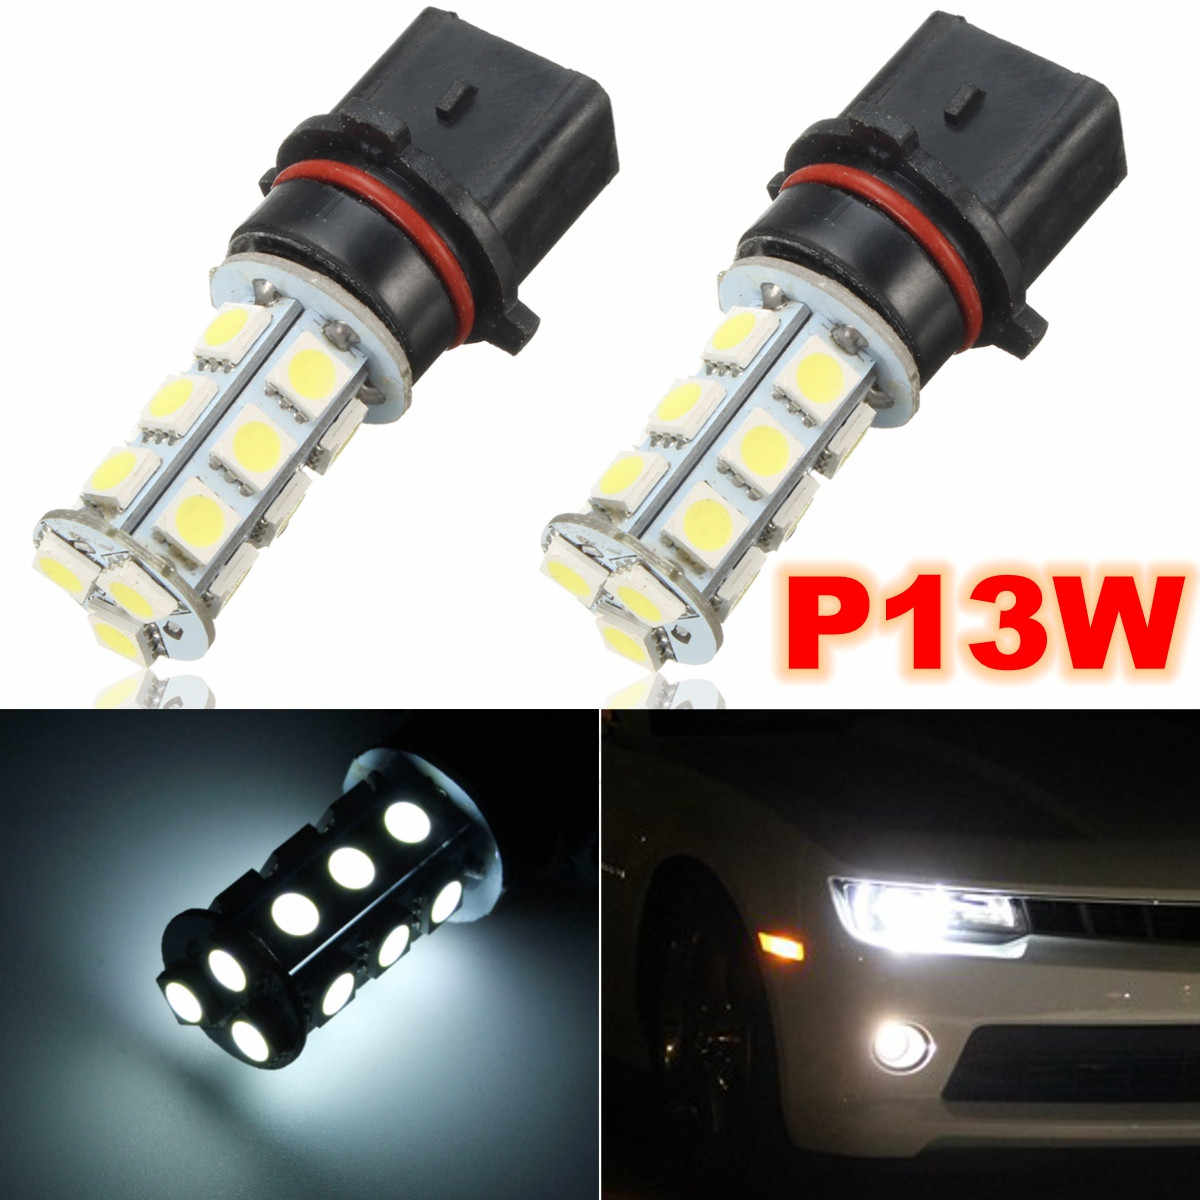 2X P13W 18 SMD 7000K White LED DRL Fog Driving Lights Lamps Replacement Bulbs For Camaro SS RS